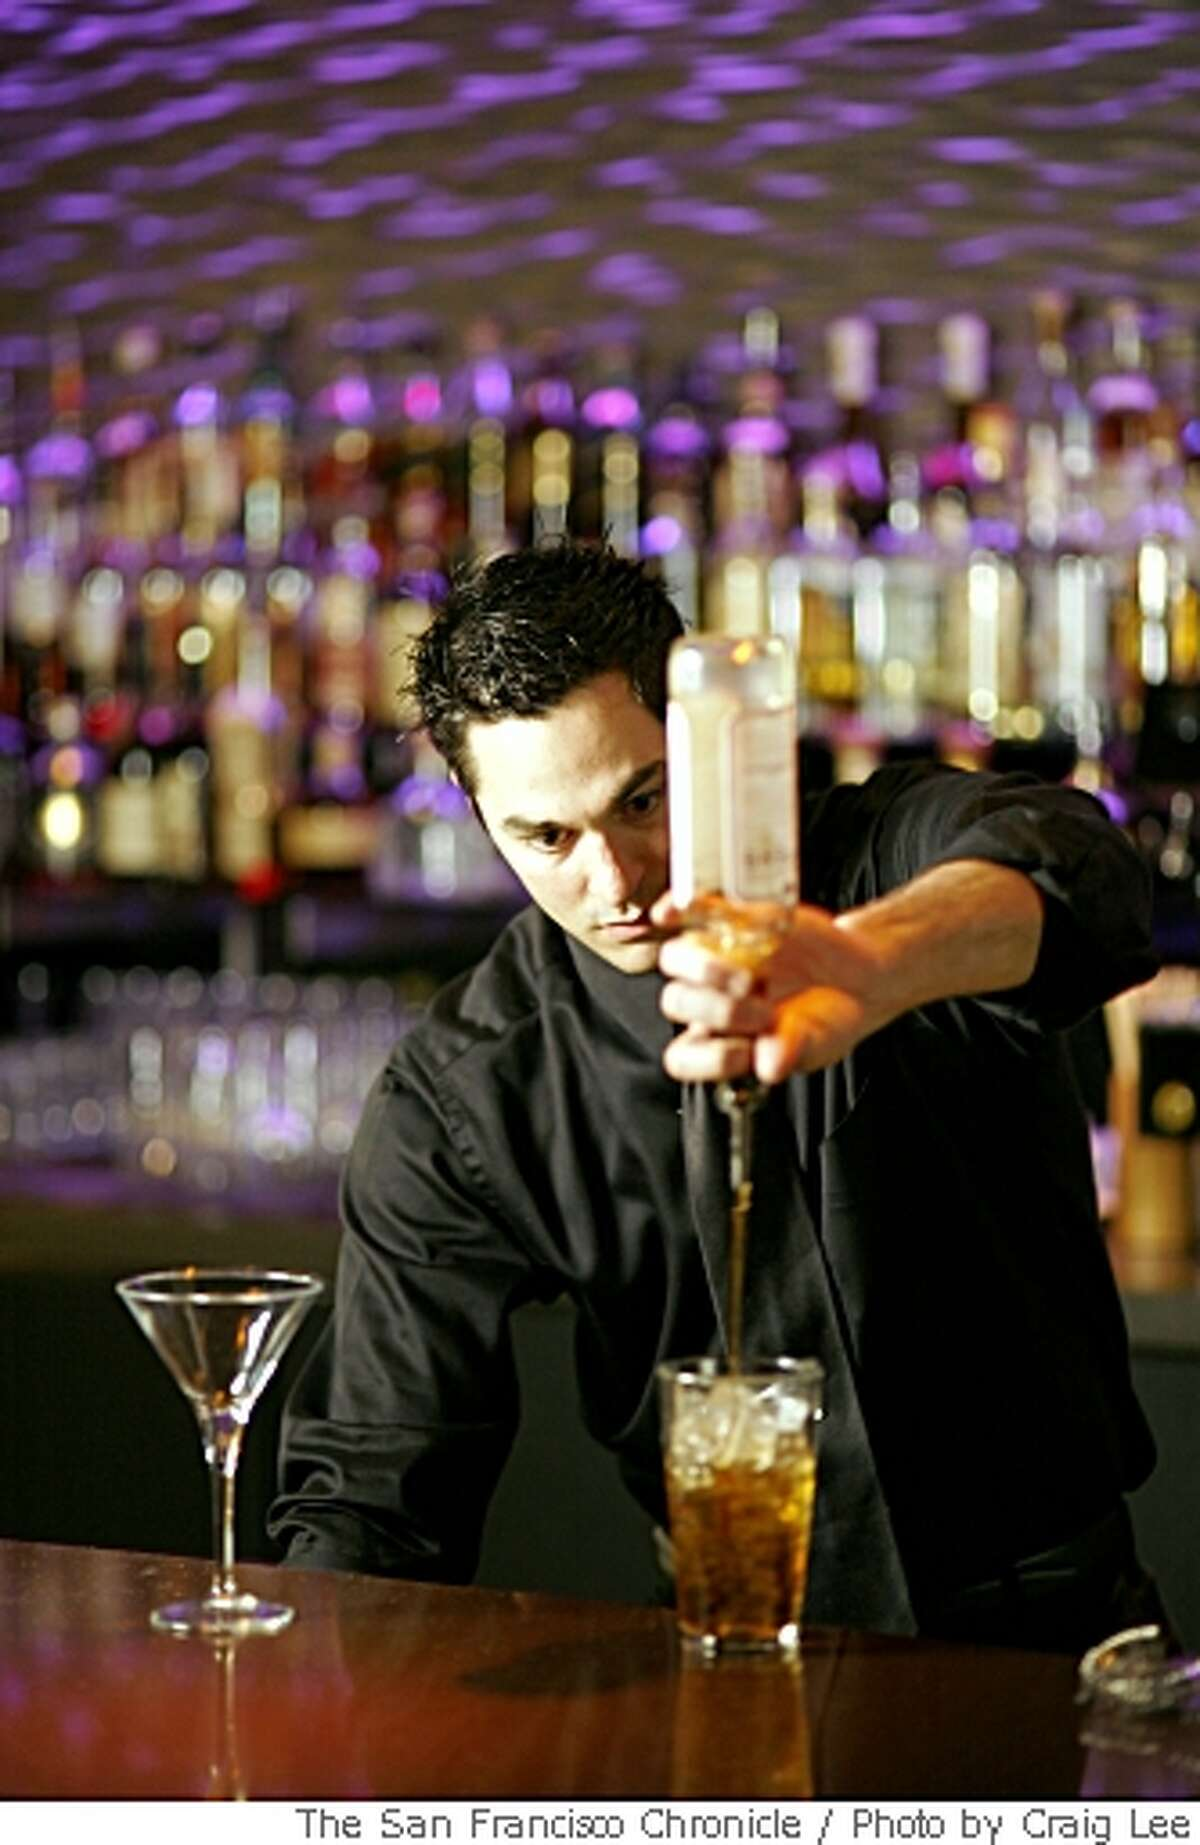 Wes Bouchia, bar manager at Yoshi's in San Francisco, Calif., on May 24, 2008. He is making a cocktail called the Rusty Gate.Photo by Craig Lee / The San Francisco Chronicle